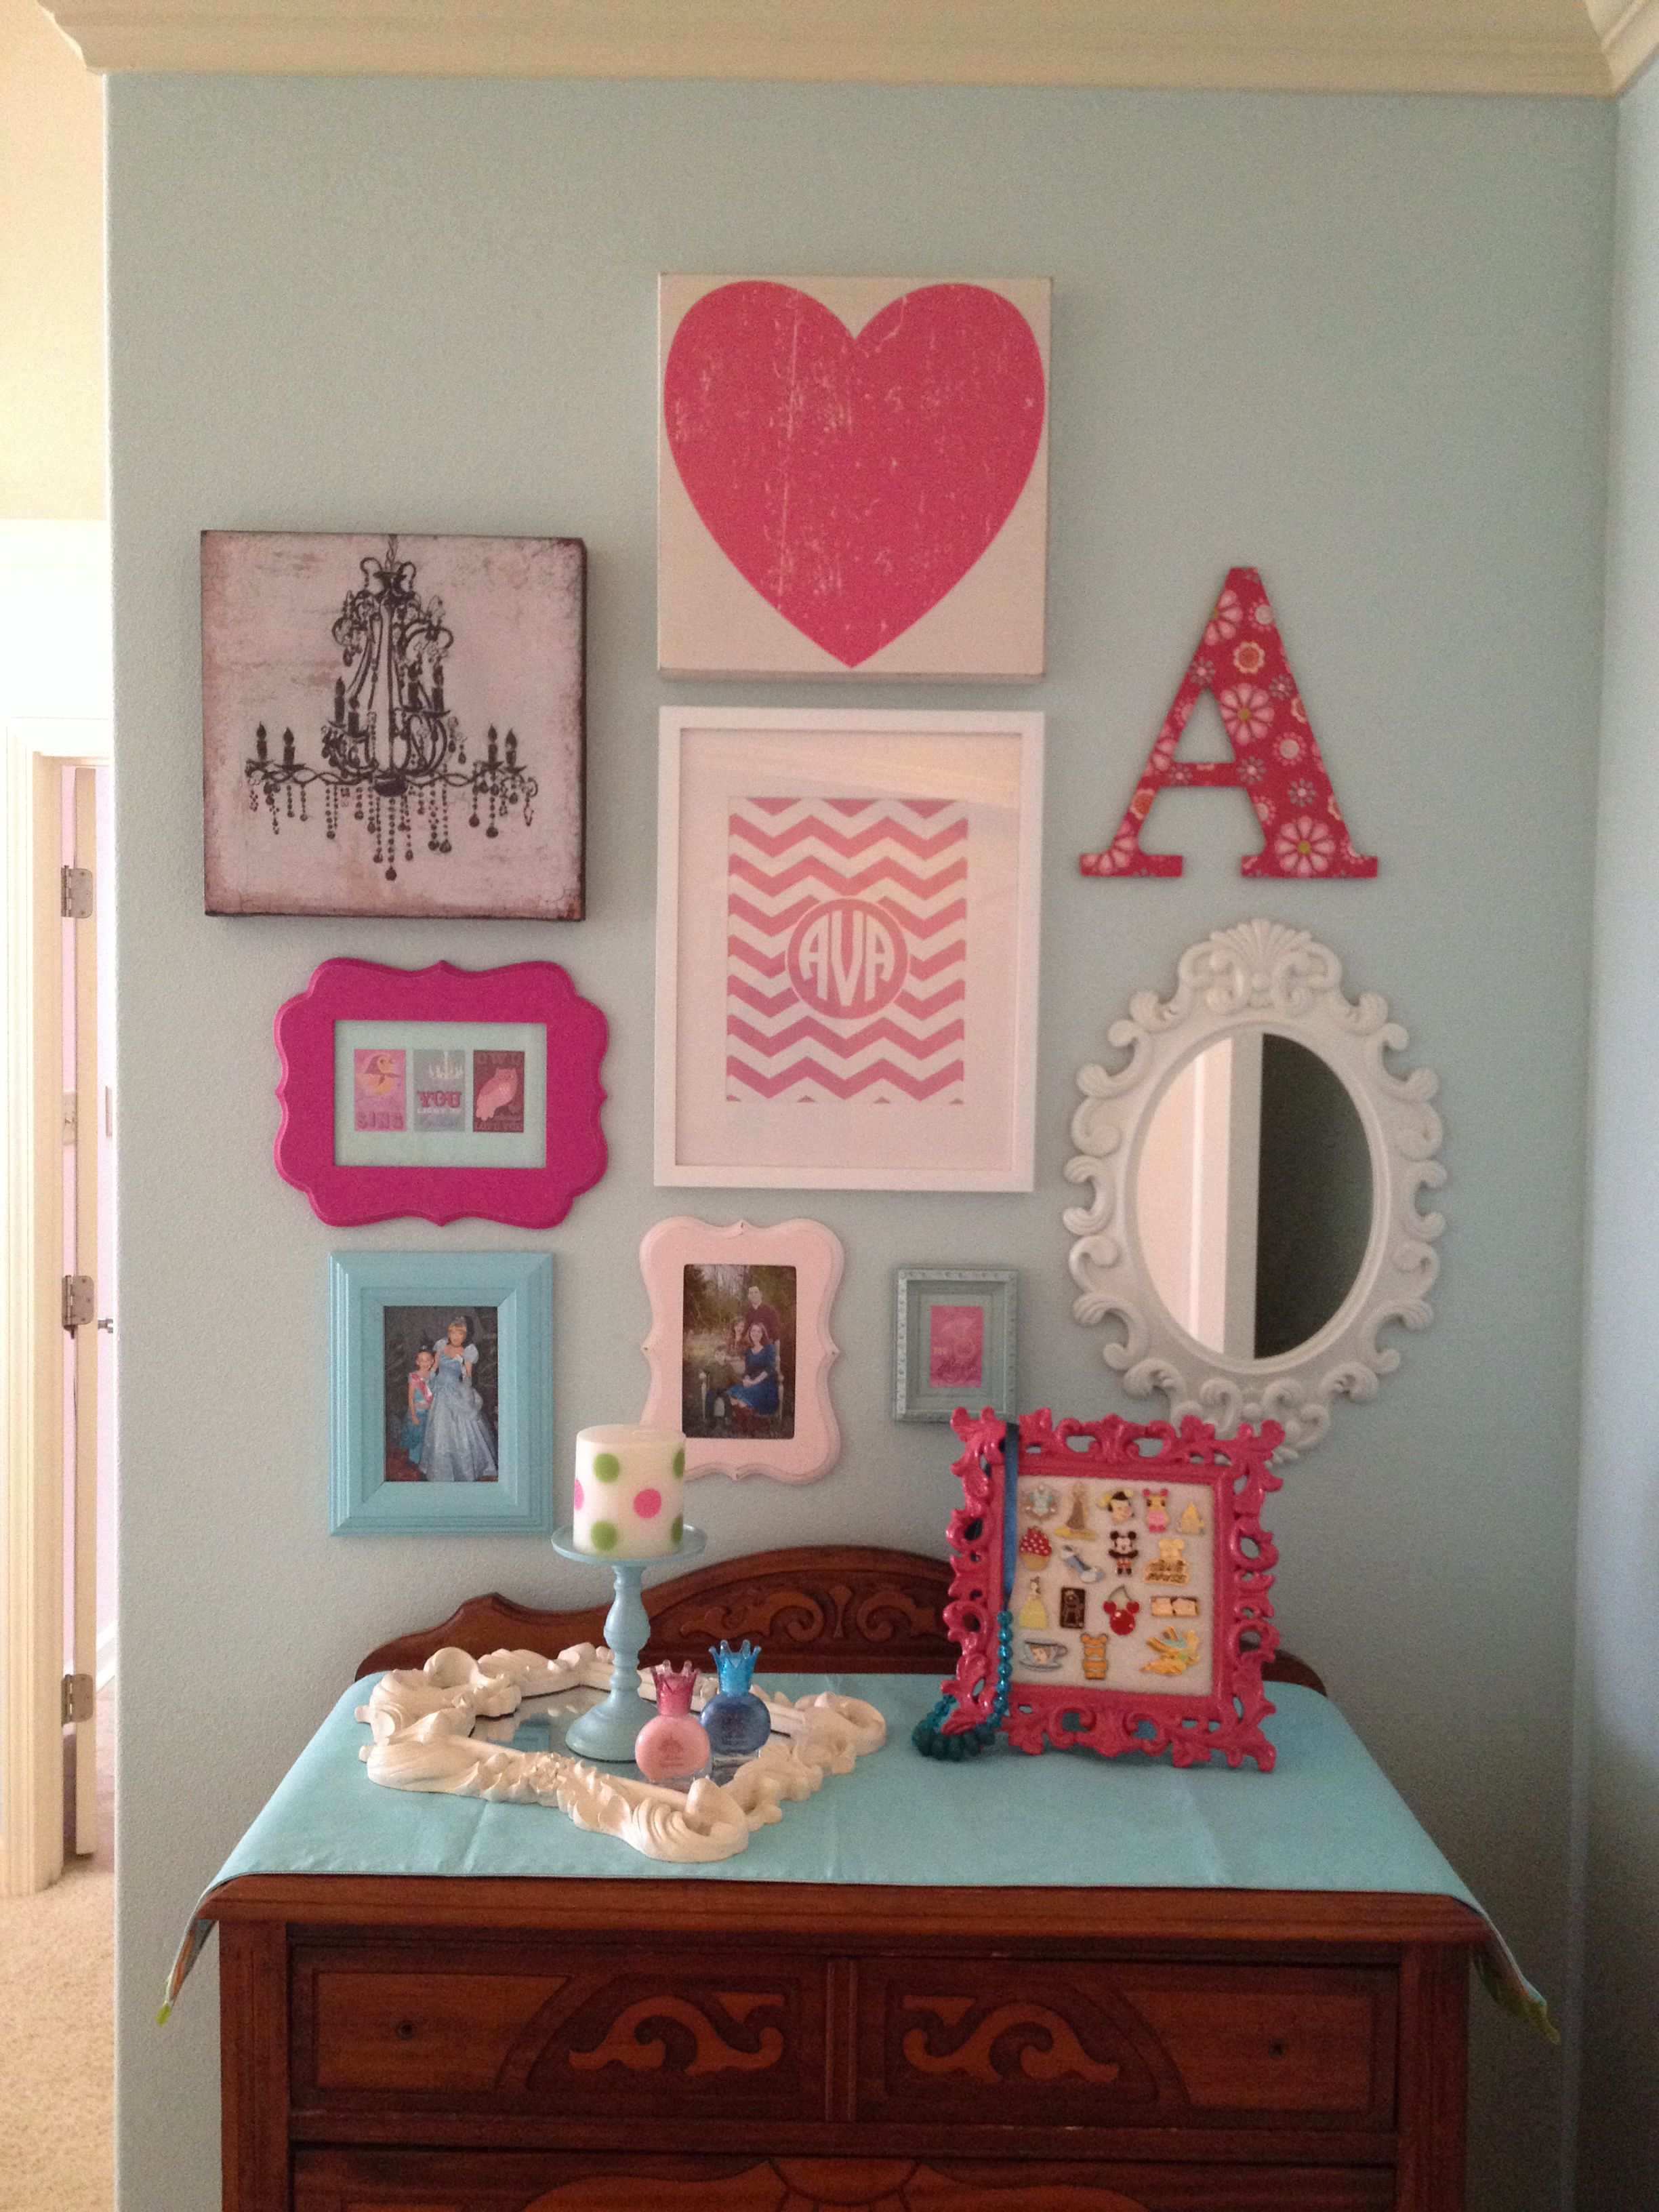 Teen Room Wall Decor.Girls Room Gallery Wall In 2019 Girl Room Luxury Kids